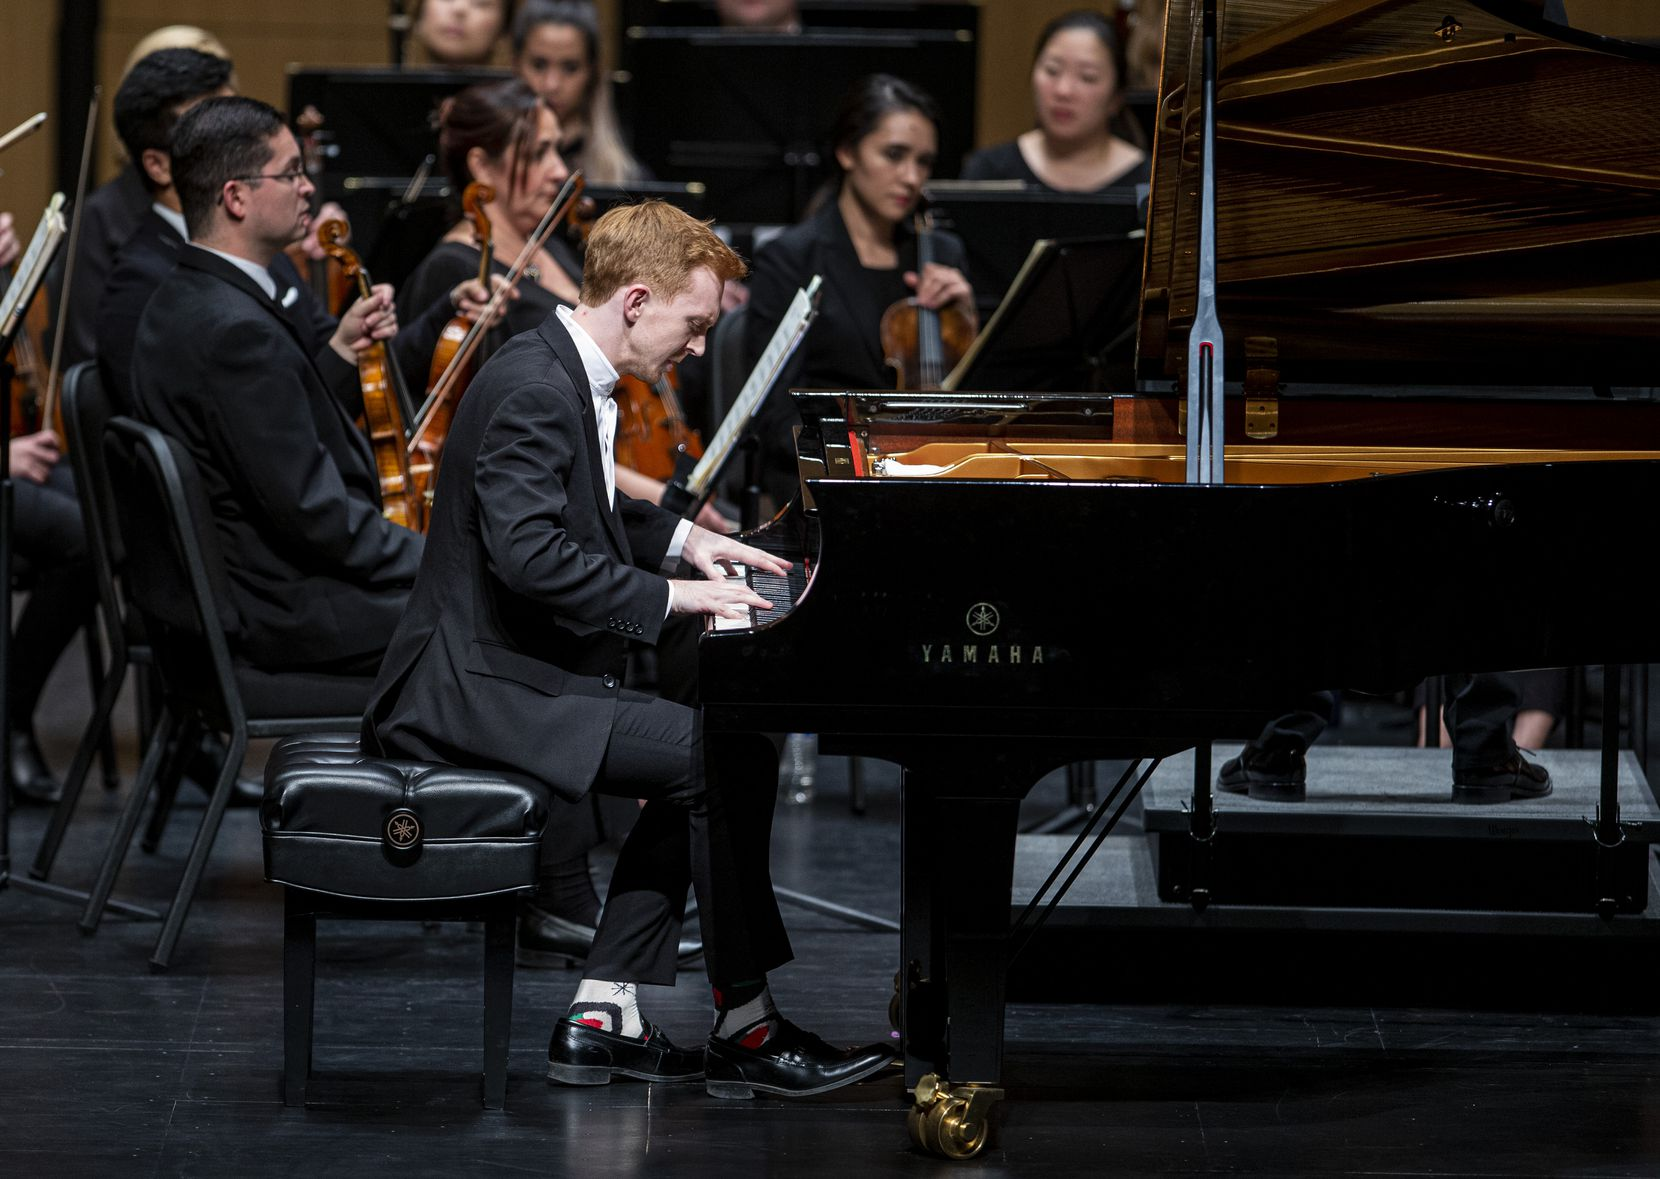 Pianist Christopher Goodpasture performs during the season-opening concert by the Dallas Chamber Symphony at Moody Performance Hall in Dallas on Oct. 22, 2019.